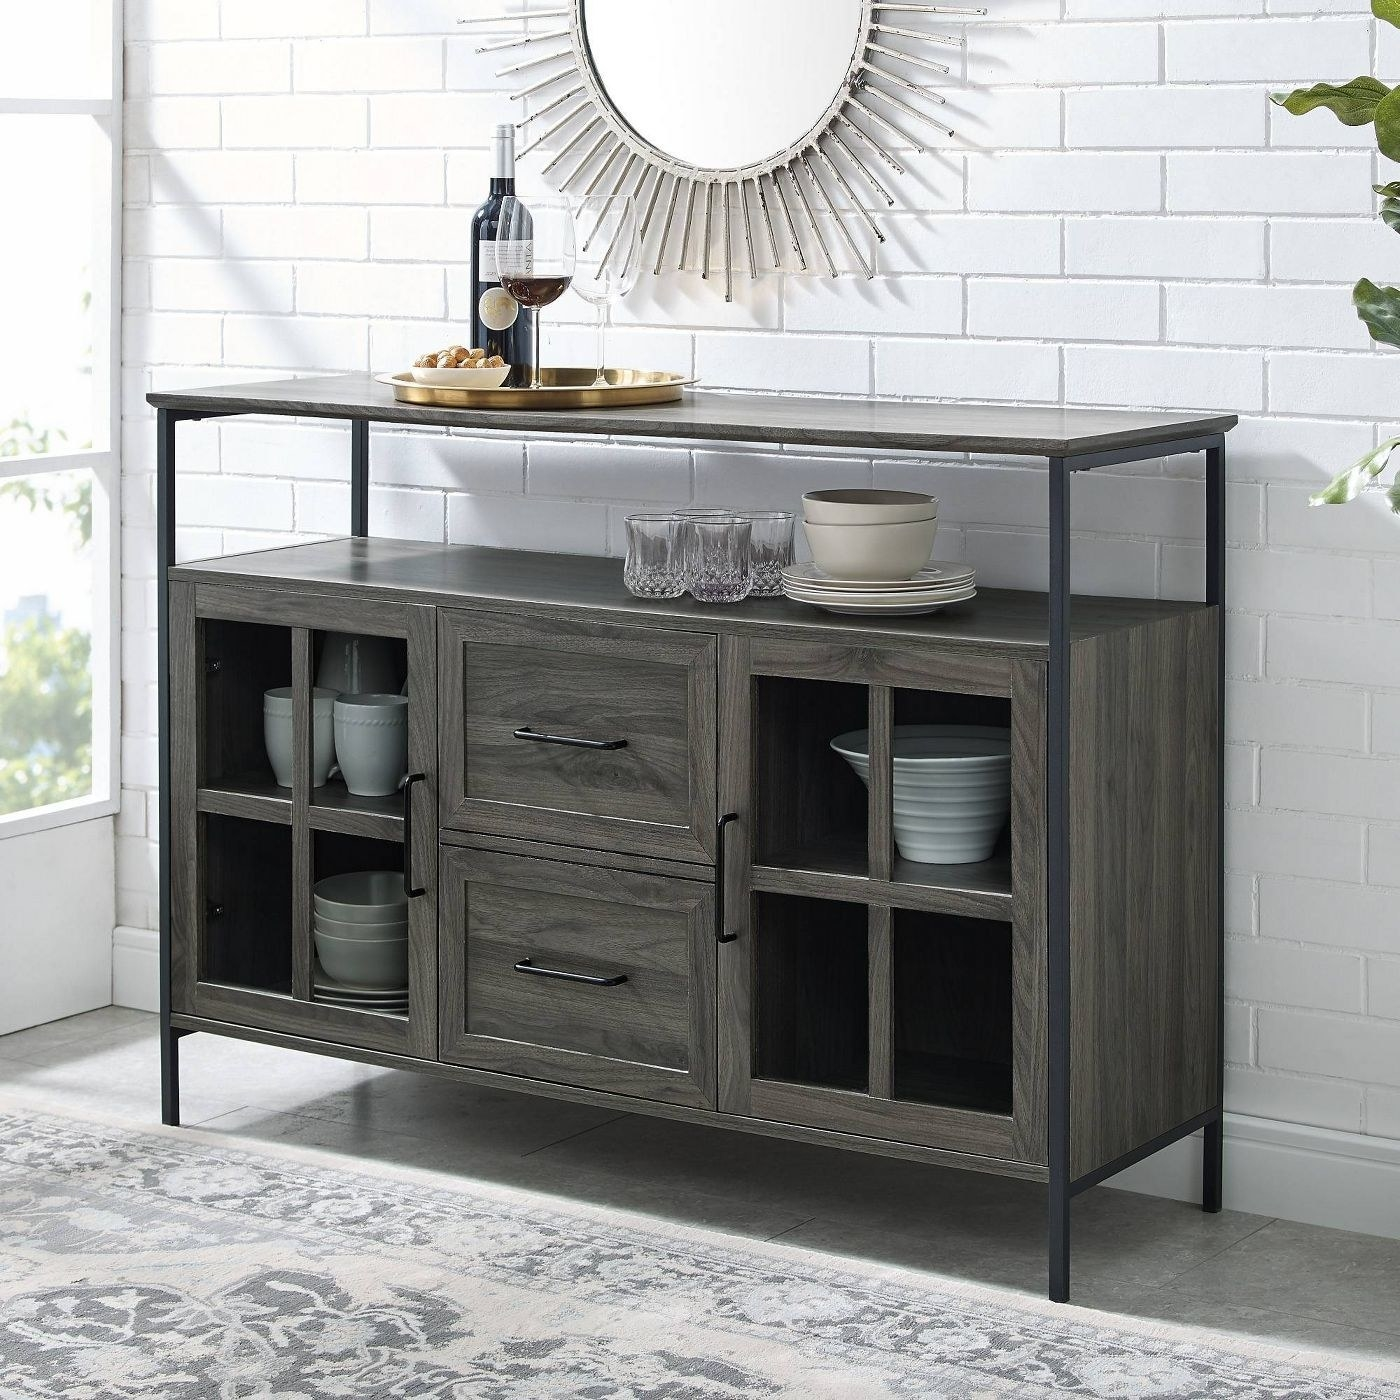 a greyish-brown buffet table with two tiers and lots of storage underneath